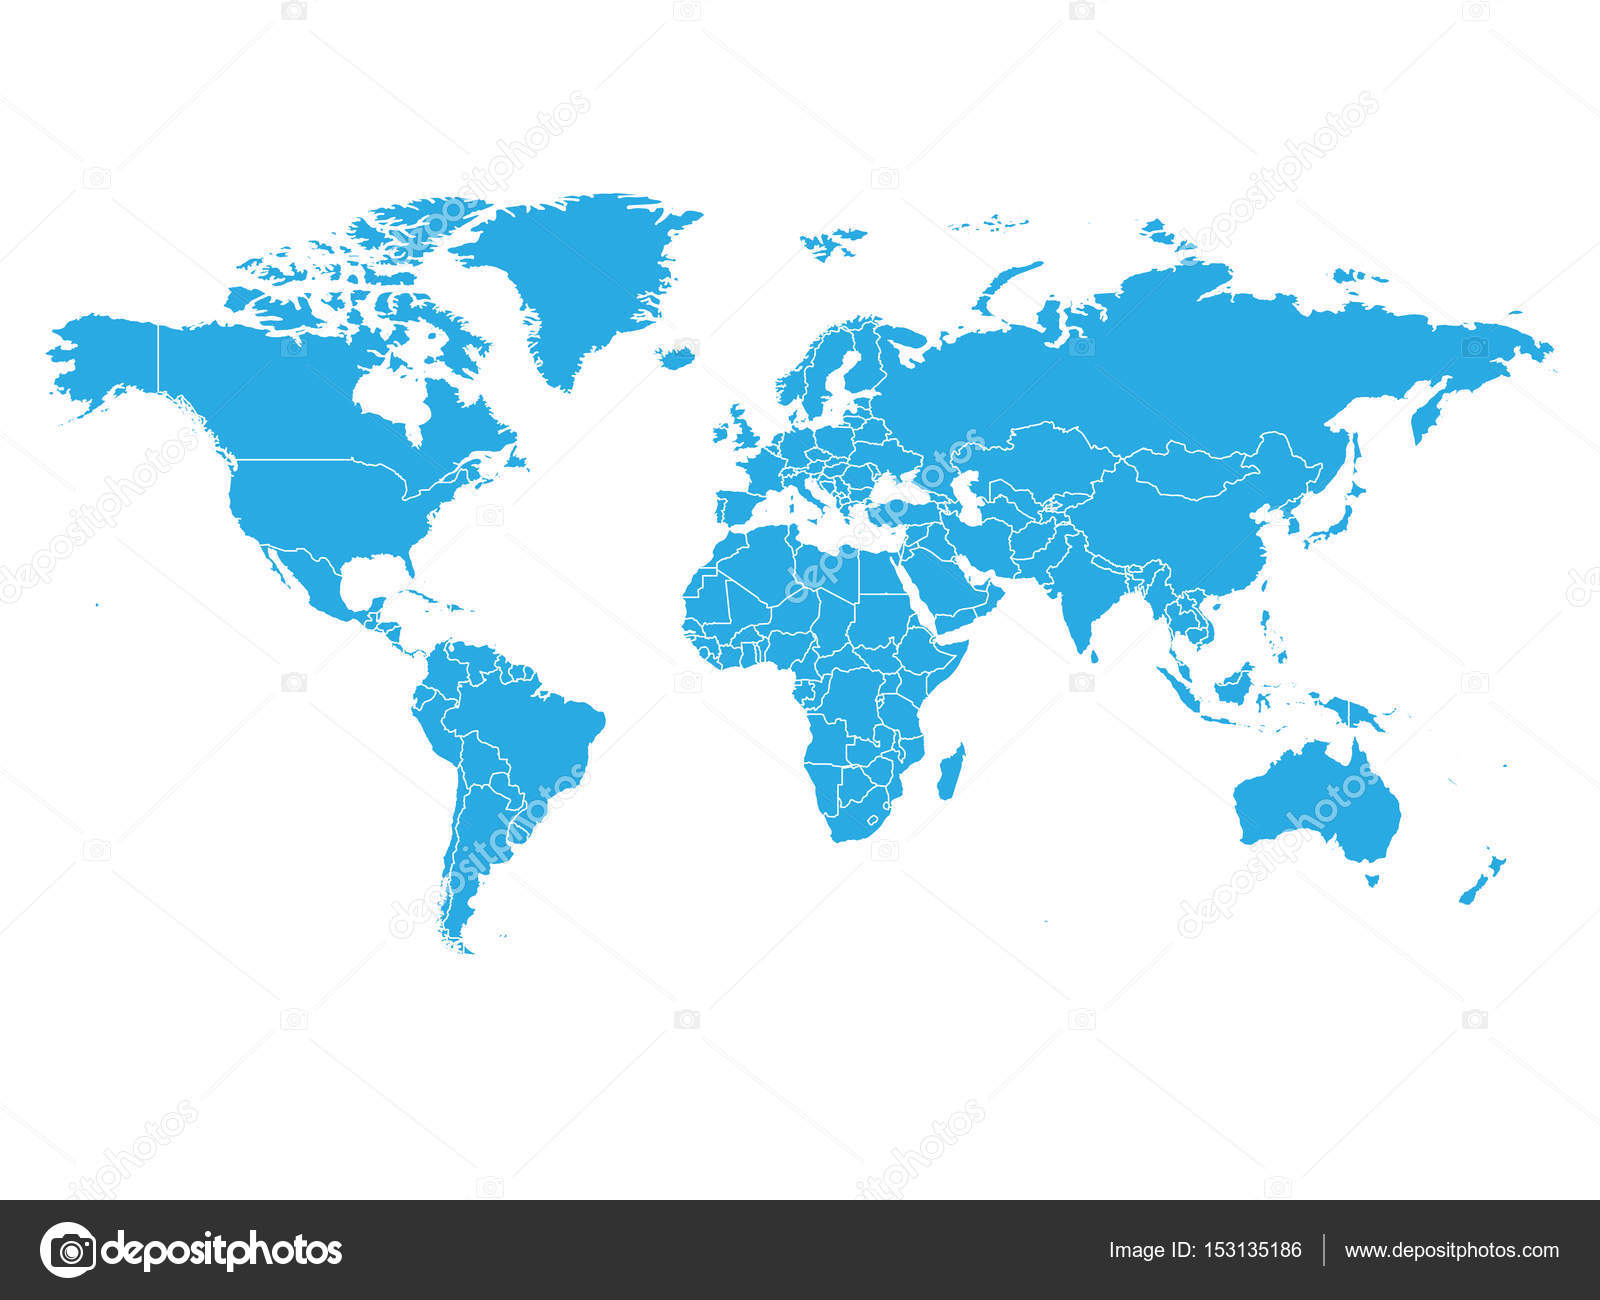 World map in blue color on white background high detail blank world map in blue color on white background high detail blank political map vector gumiabroncs Gallery